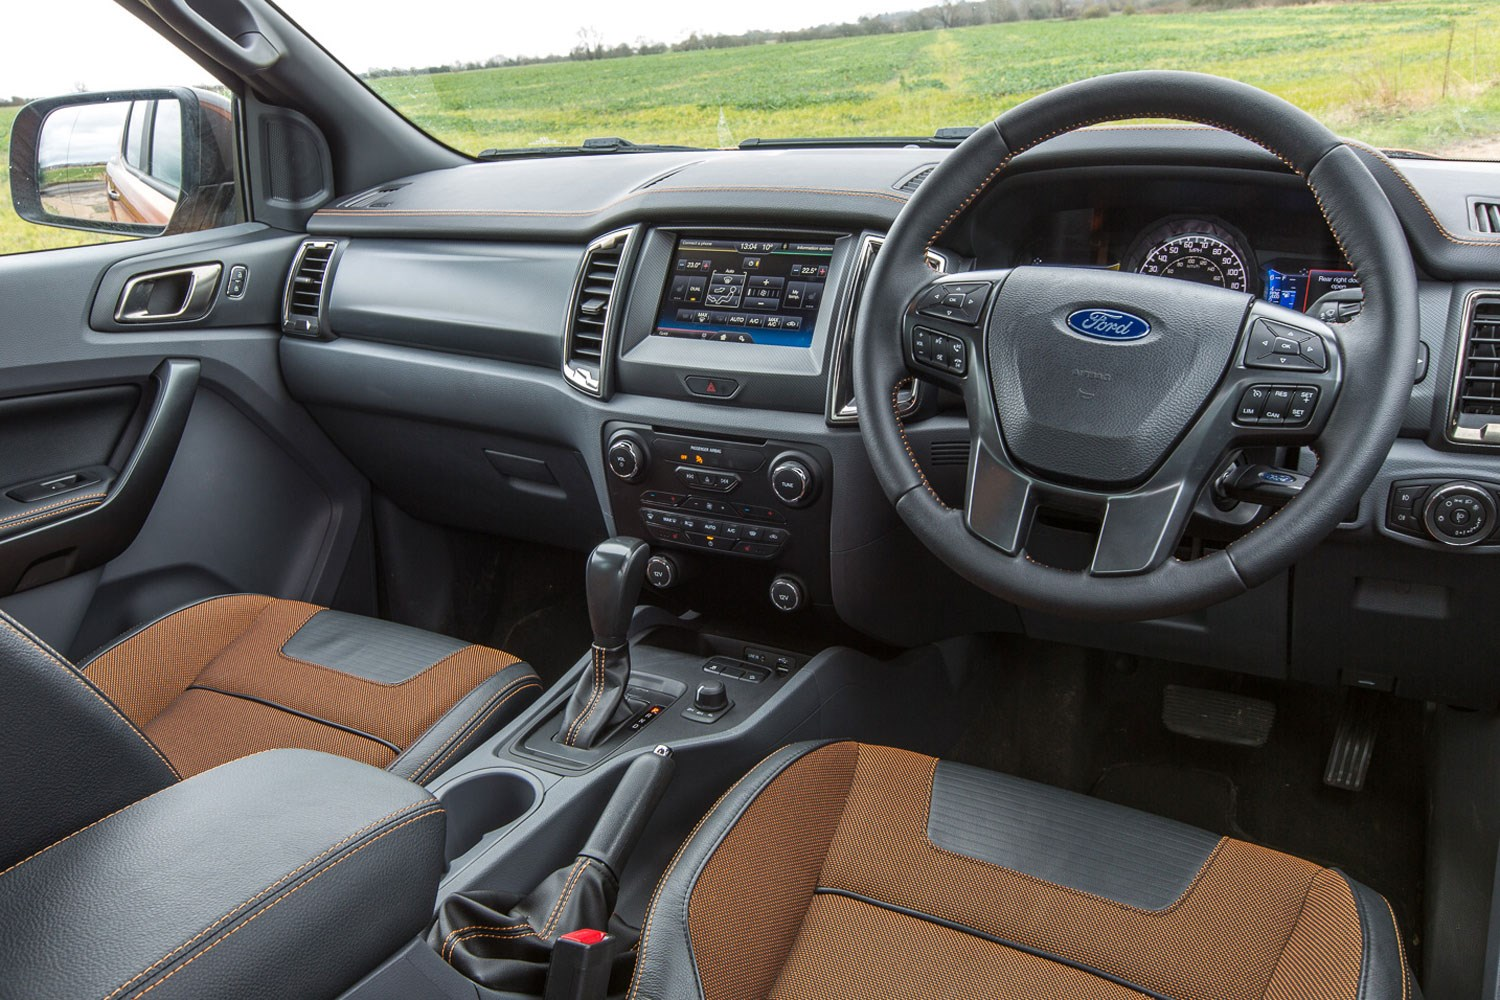 Ford Ranger review - 2016 facelift cab interior showing seats, steering wheel and dashboard